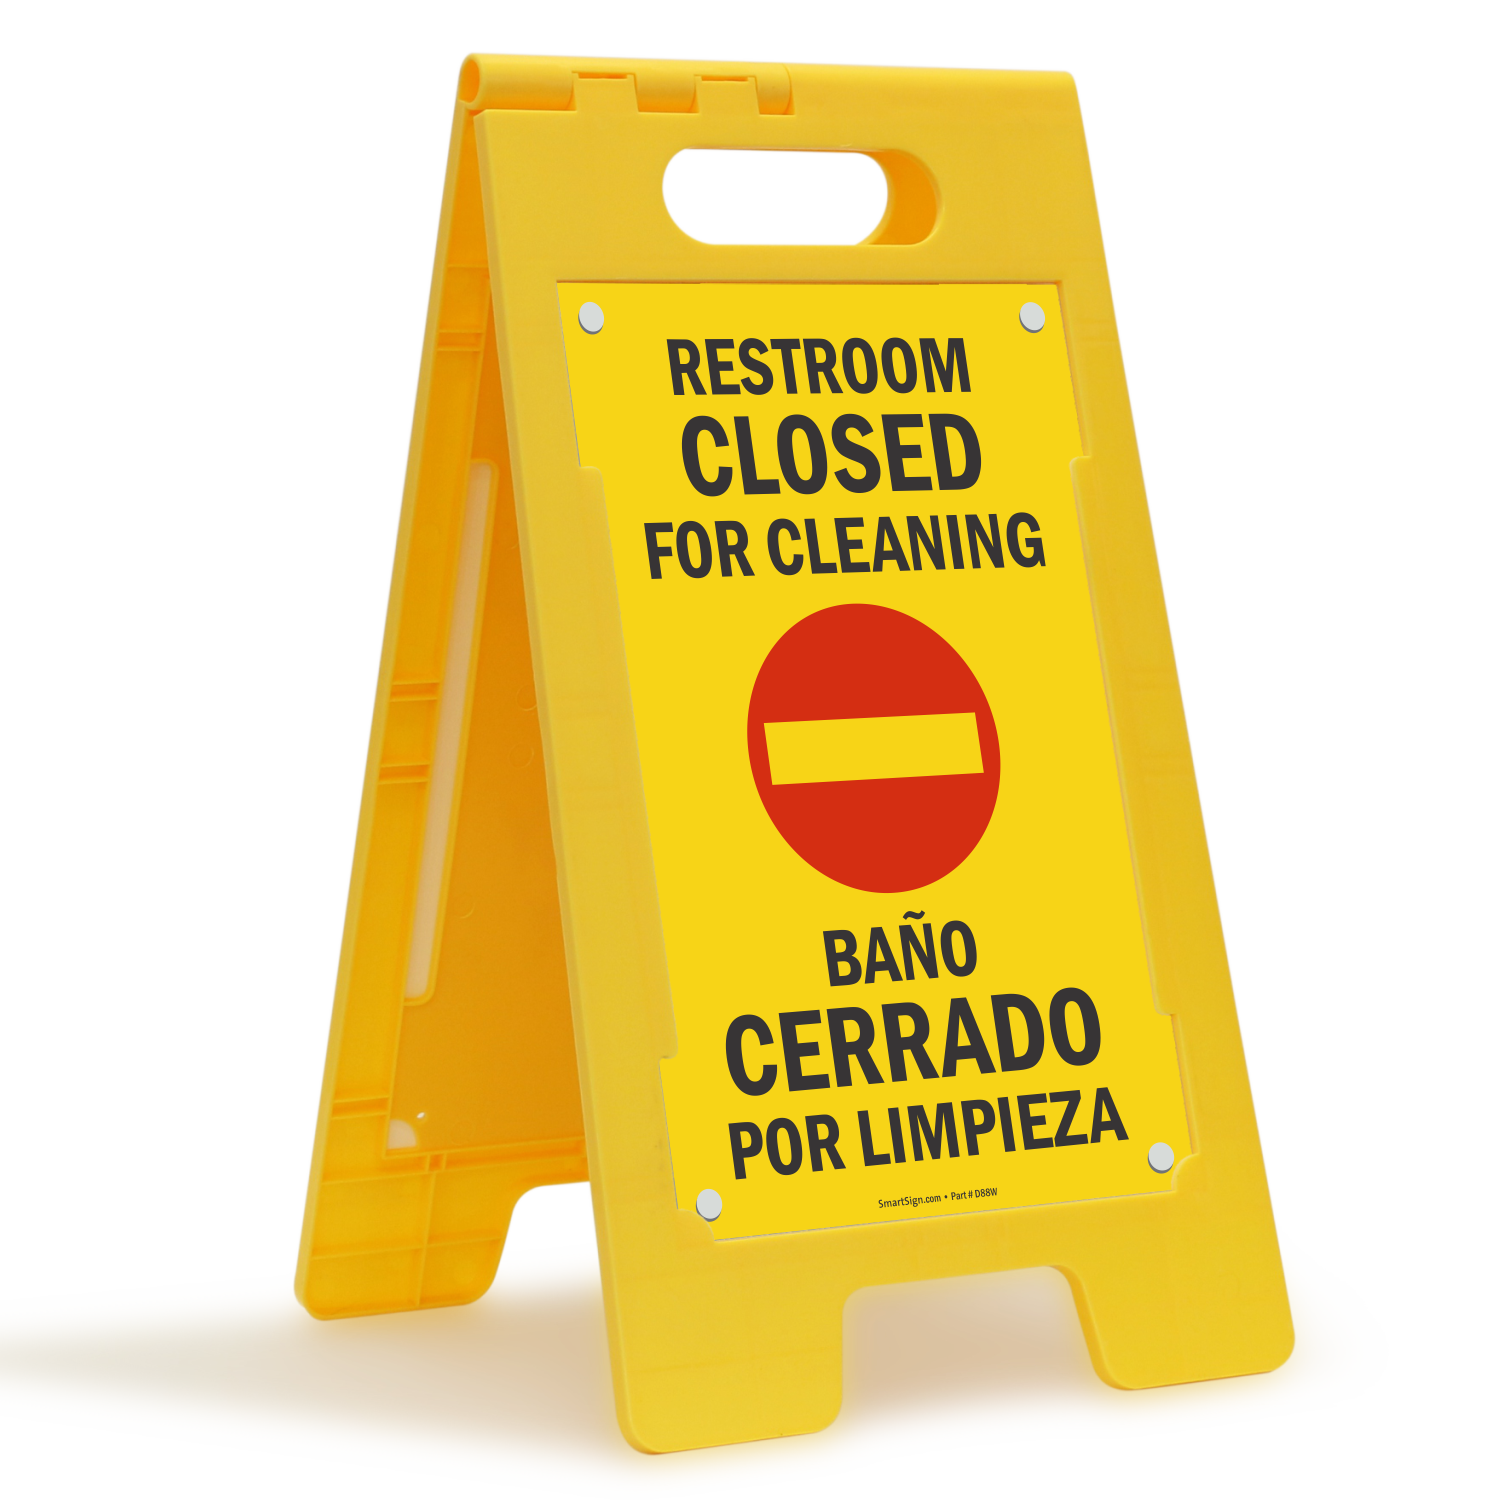 Bilingual Restroom Closed For Cleaning Free Standing Sign. Bilingual Restroom Closed For Cleaning Free Standing Floor Sign